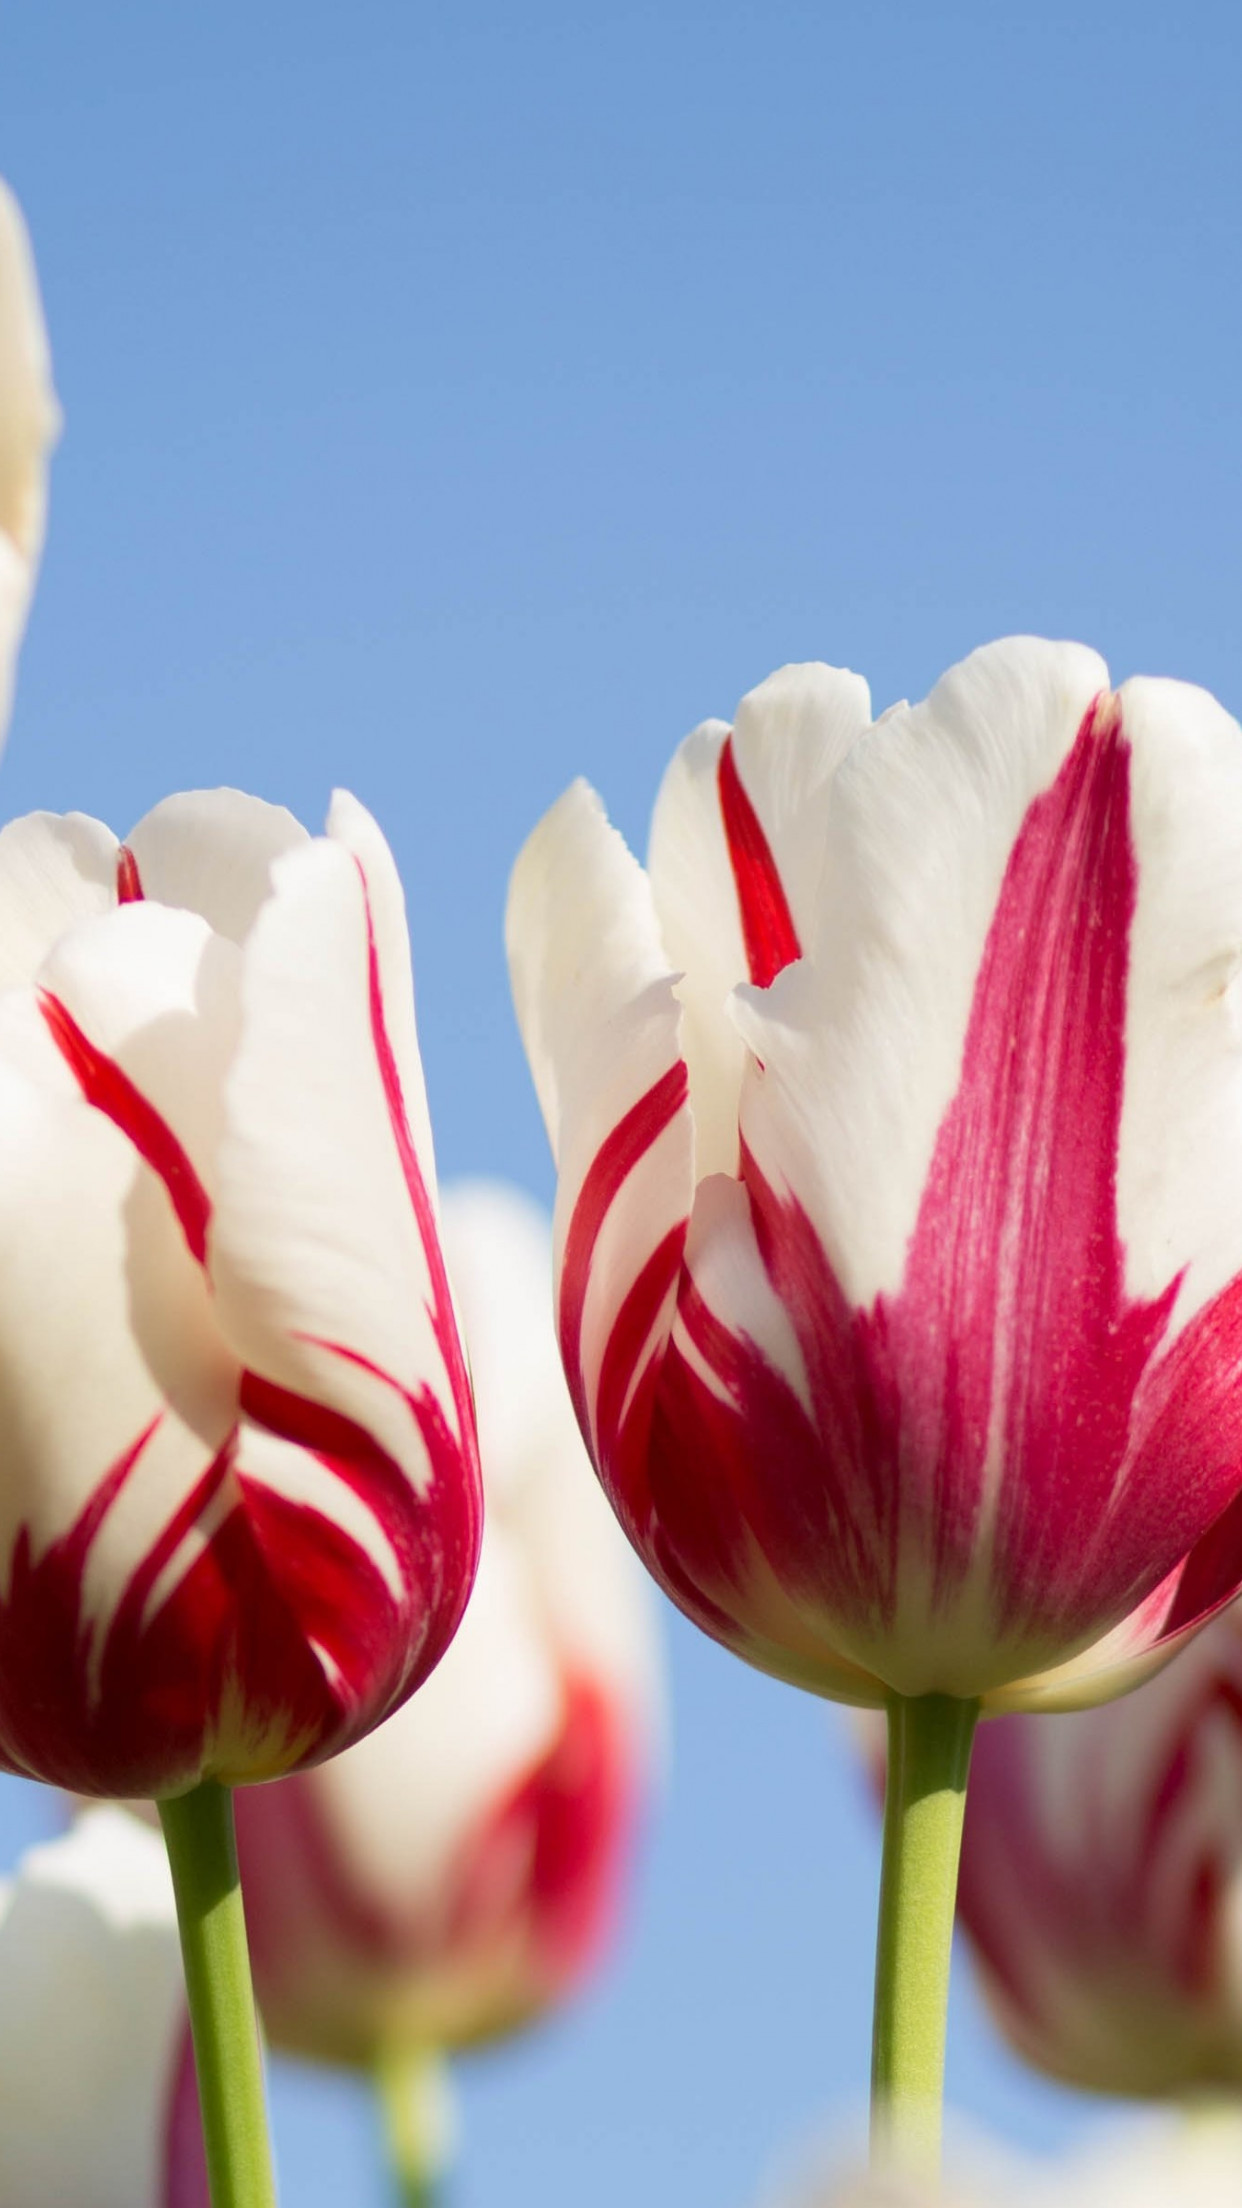 Red white tulips wallpaper 1242x2208